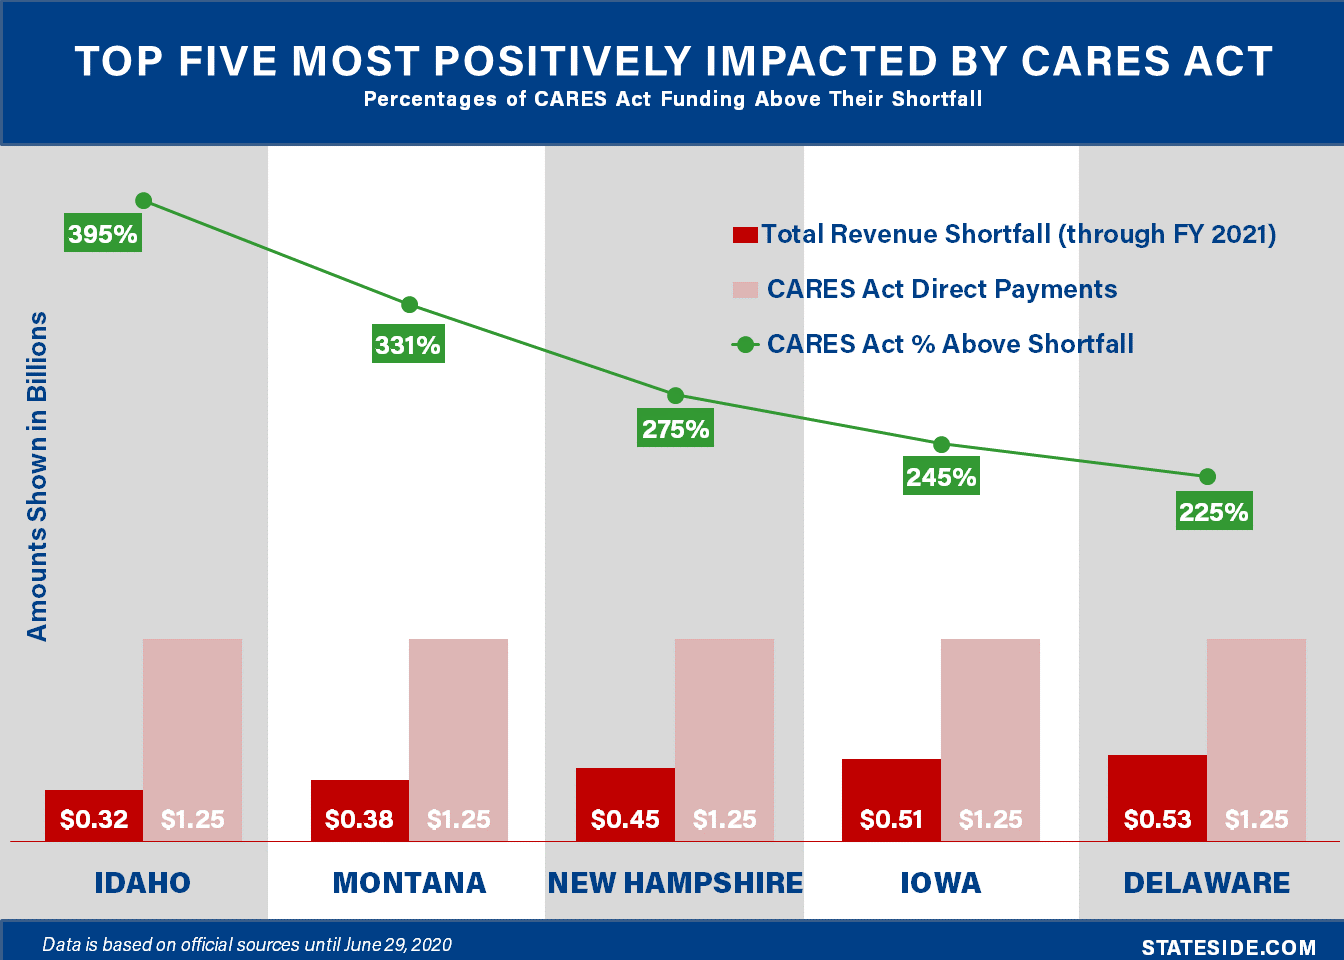 Top 5 States Most Positively Impacted by CARES Act